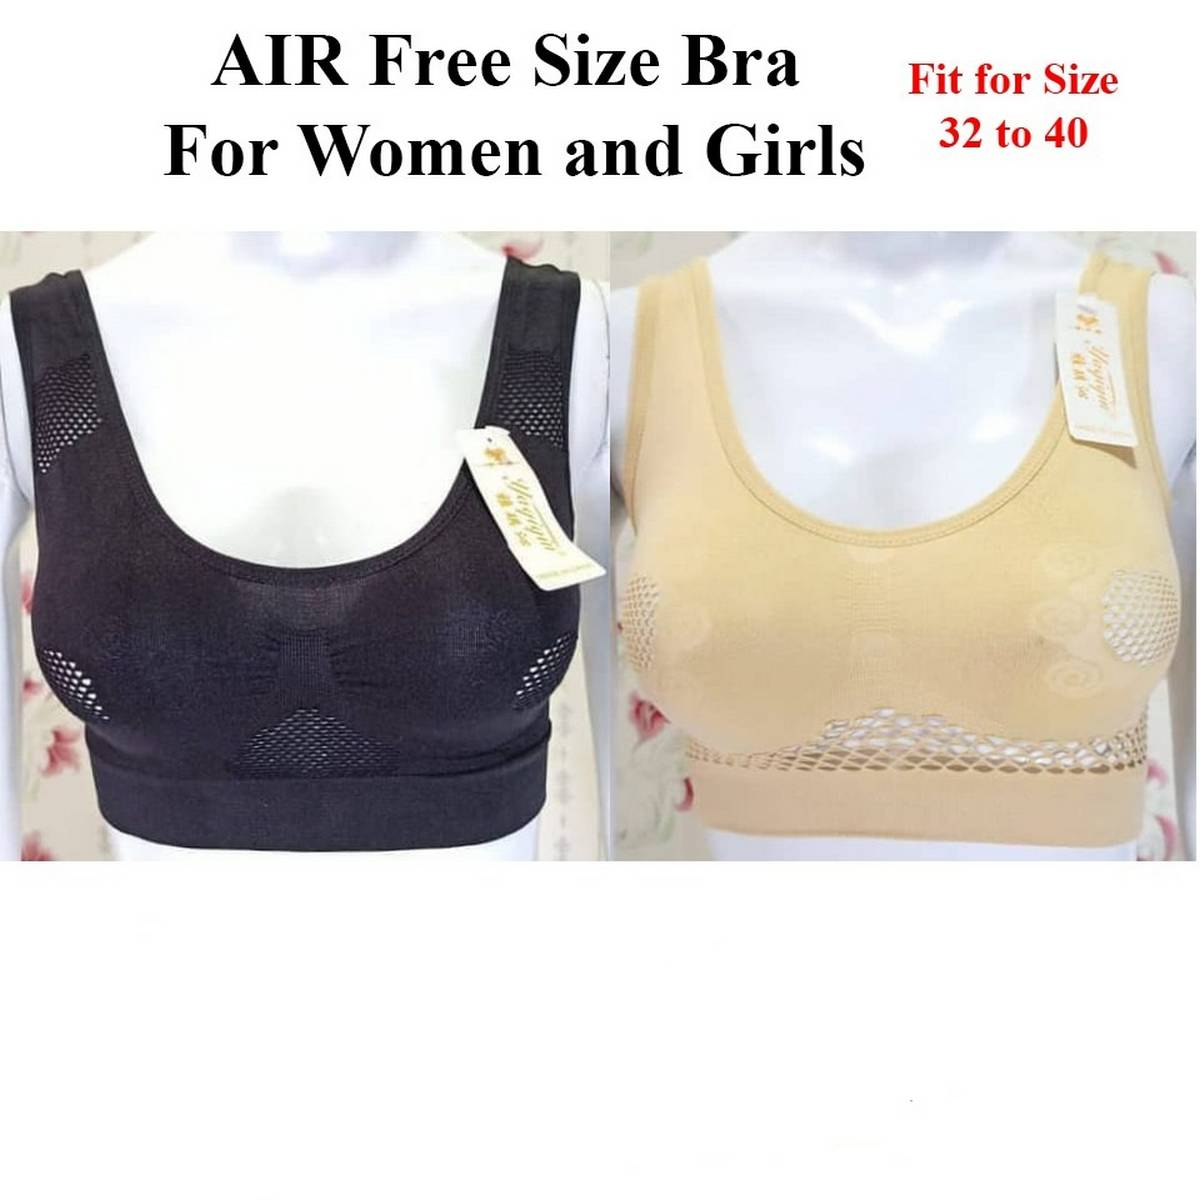 Air Bra For Women and Girls Adjustable, Stretchable and NonPadded - 1 Piece